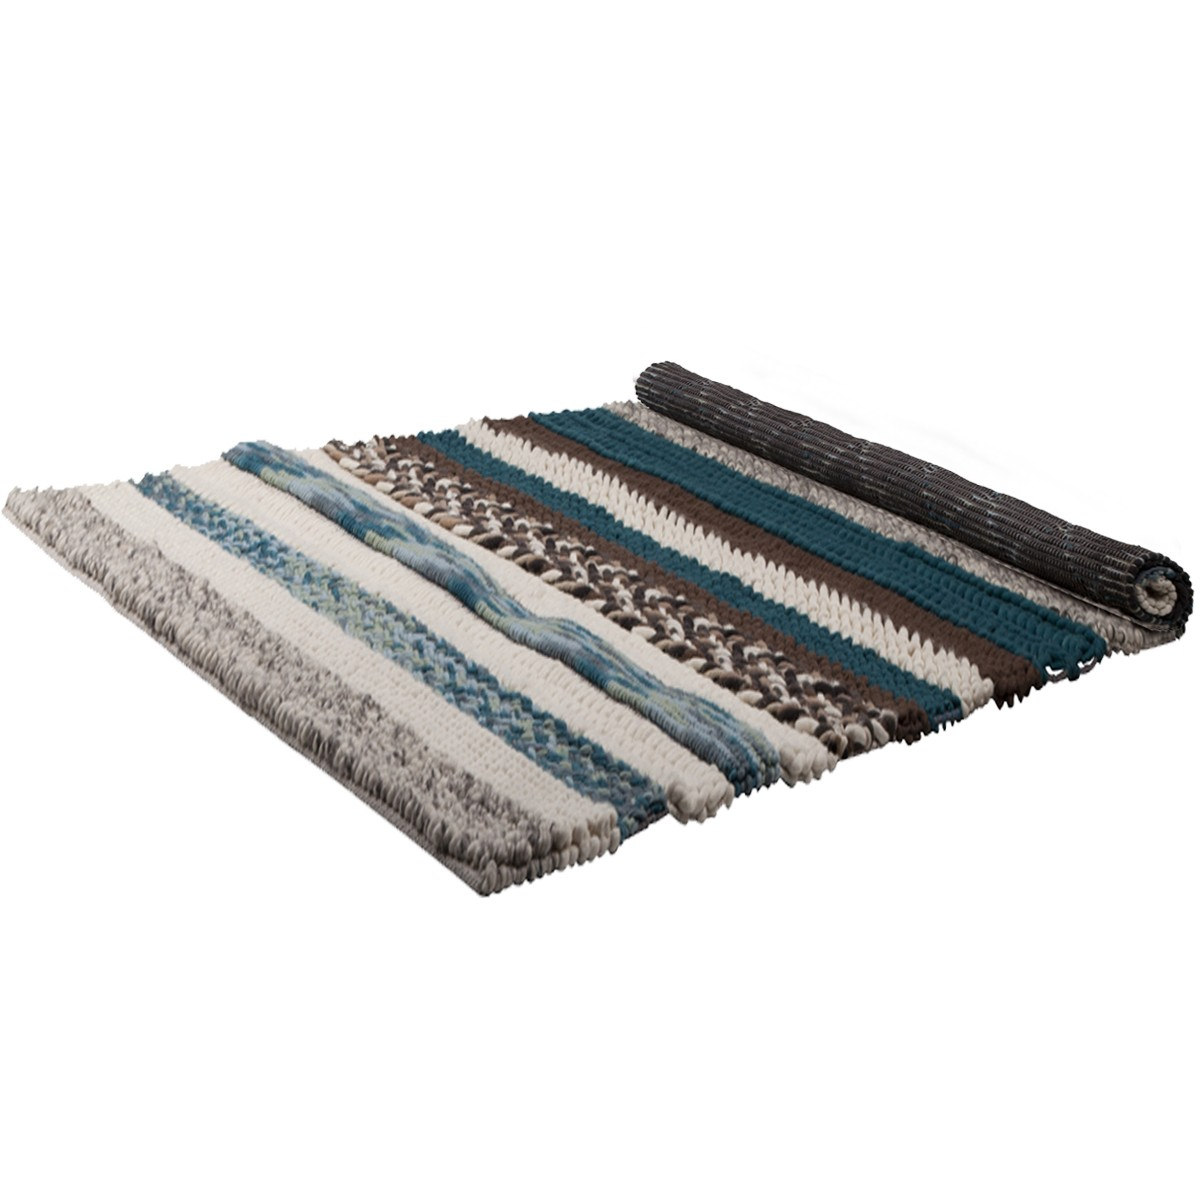 Tapis Andrea marron et bleu 200x300 cm - Design Lab Furniture